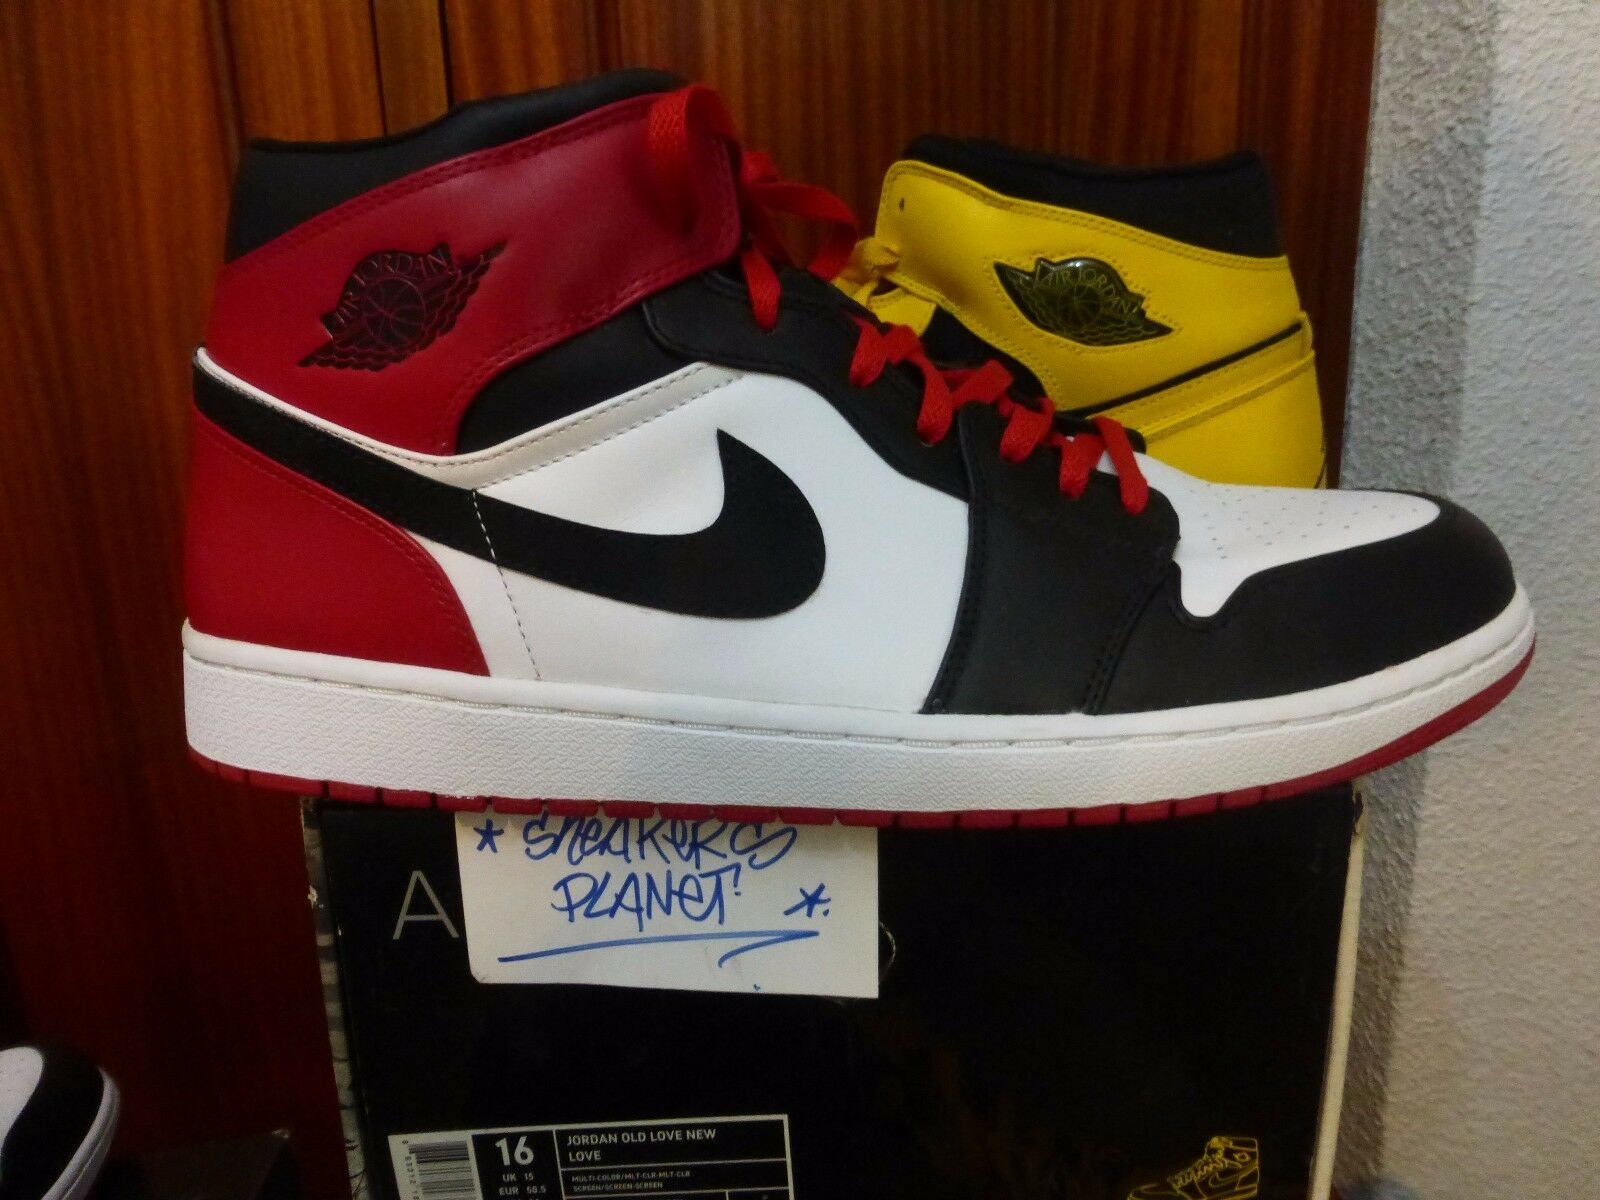 NIKE AIR JORDAN 1 OLD LOVE NEW LOVE US 16 NEW DS 15 14 BLACK TOE 1 2 3  CHICAGO Great discount